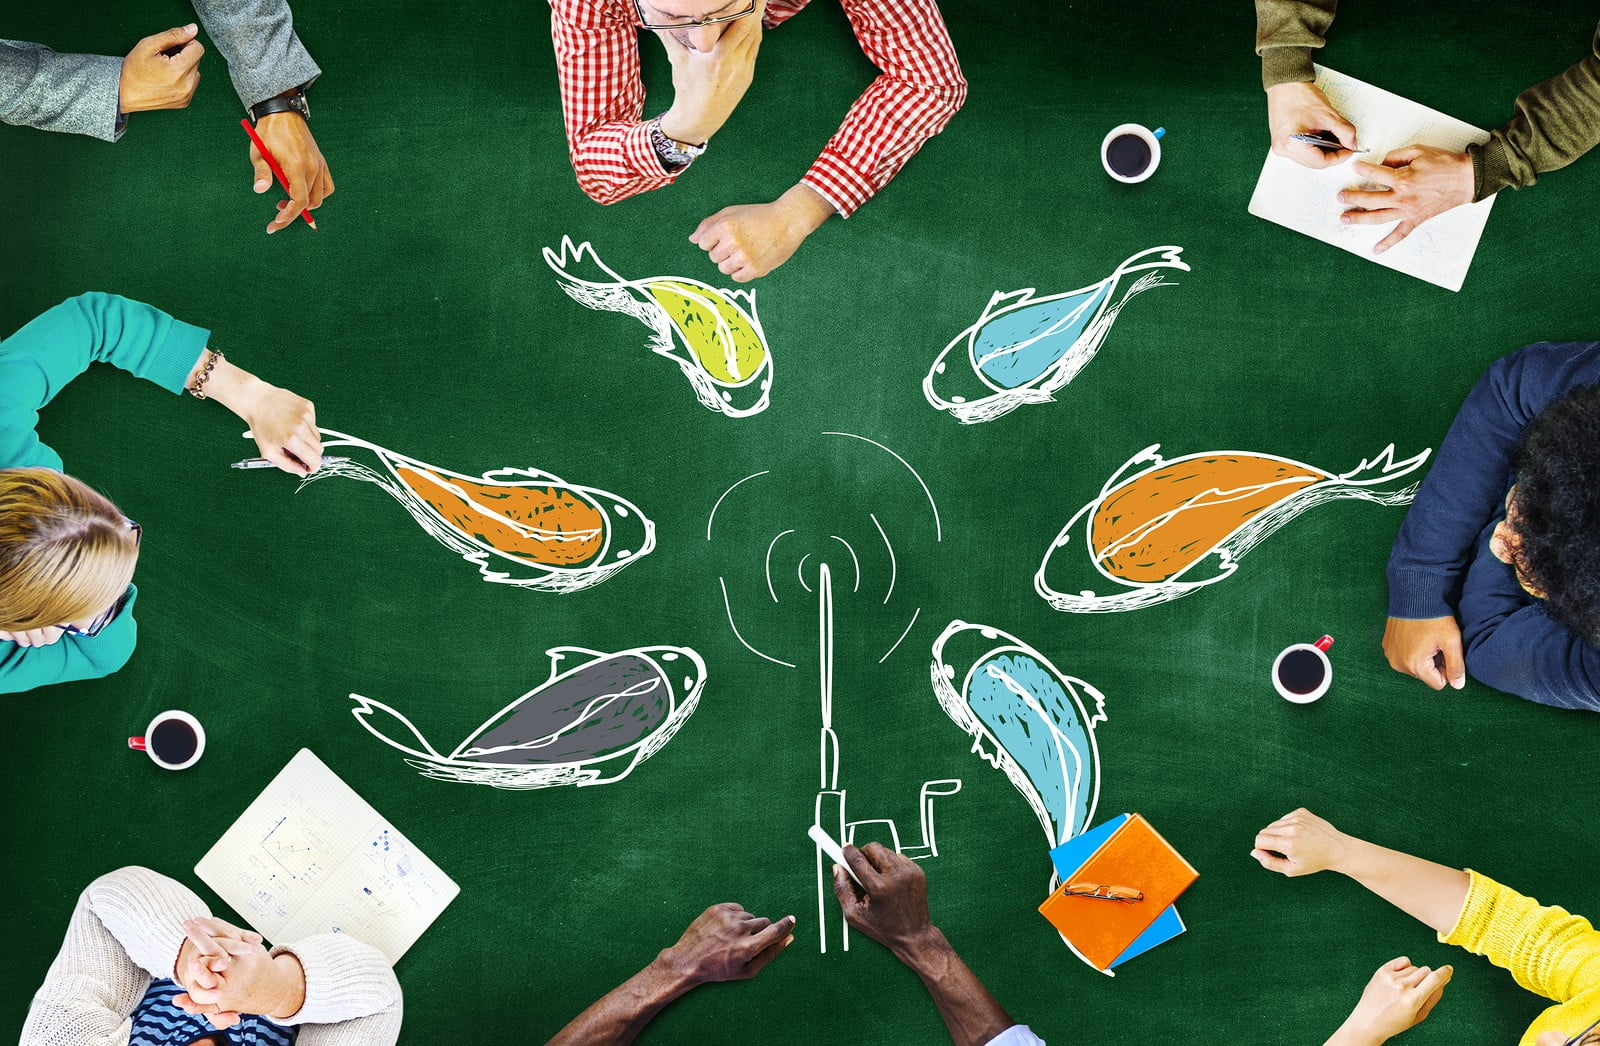 Are You Fishing For Leads On The Internet, But Catching Very Few Fish?